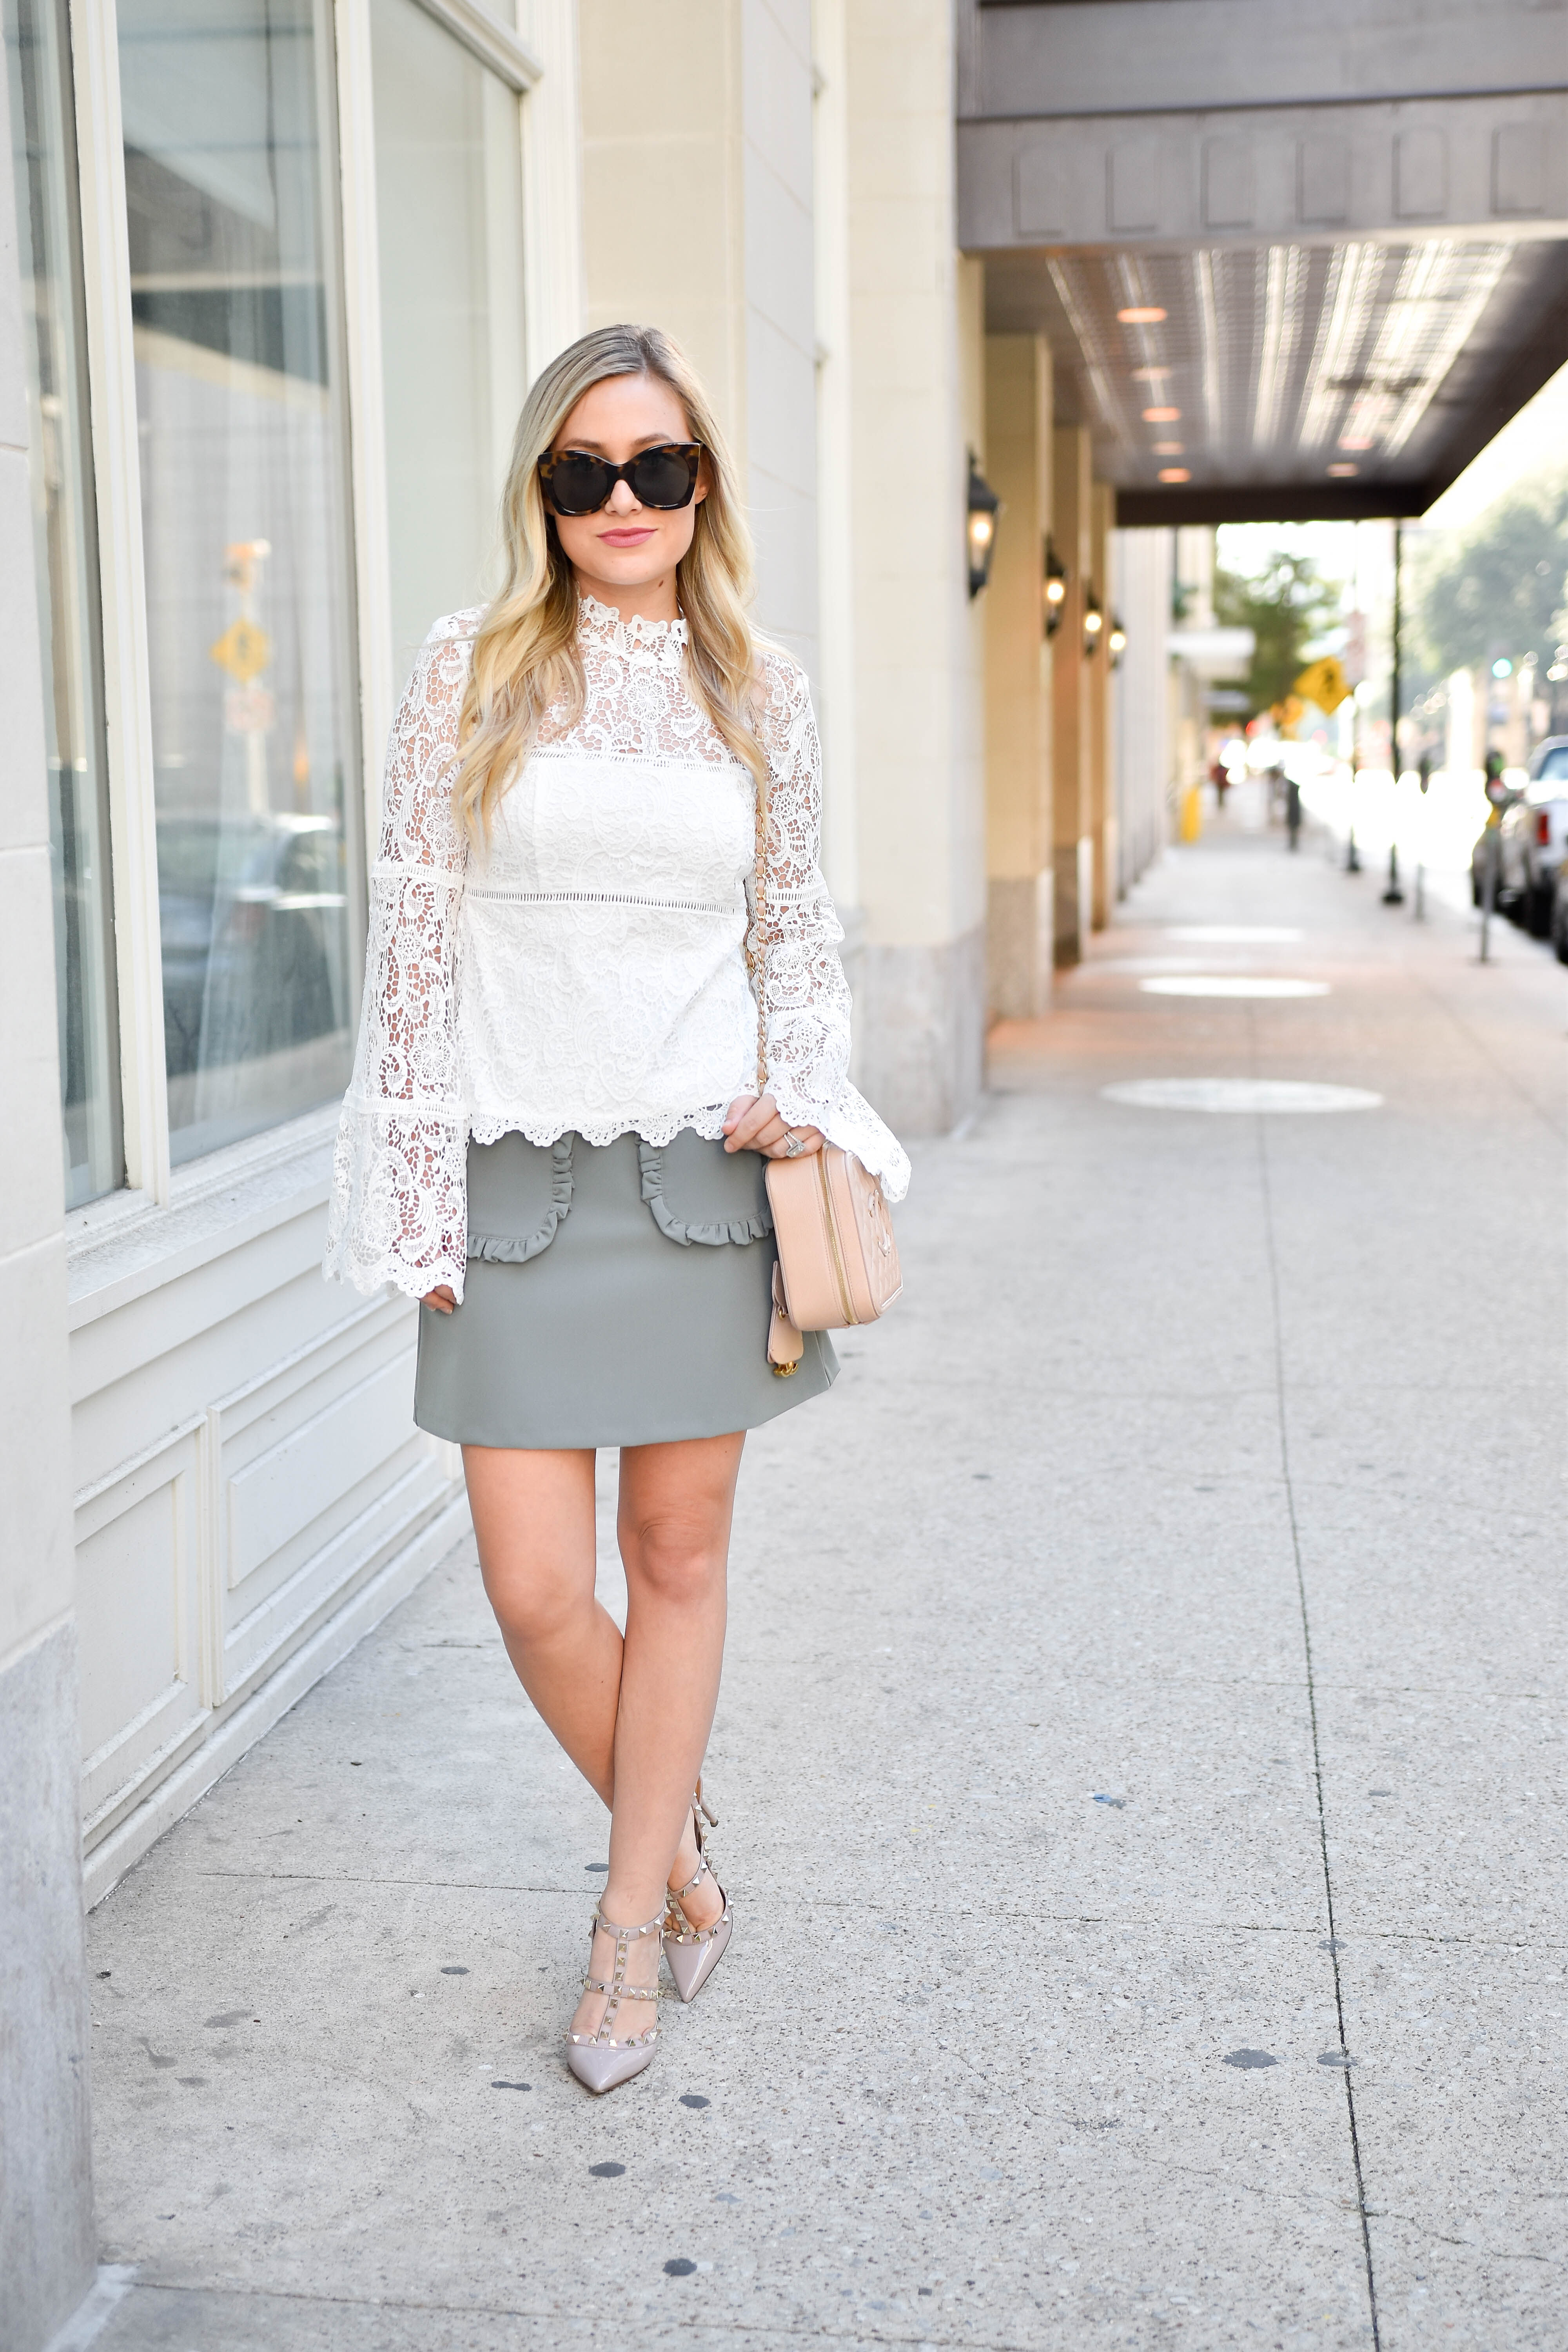 lace-top, jeans, topshop-jeans, nordstrom, nordstrom-jeans, chanel, chanel-handbag, revolve, revolve-lace-top, asos, asos-skirt, girly-style, feminine-lace, bell-sleeve-top, lace-top-under-$100, ruffle-skirt, valentino, valentino-rickstuds, nude-valentino-shoes, neiman-marcus-shoes